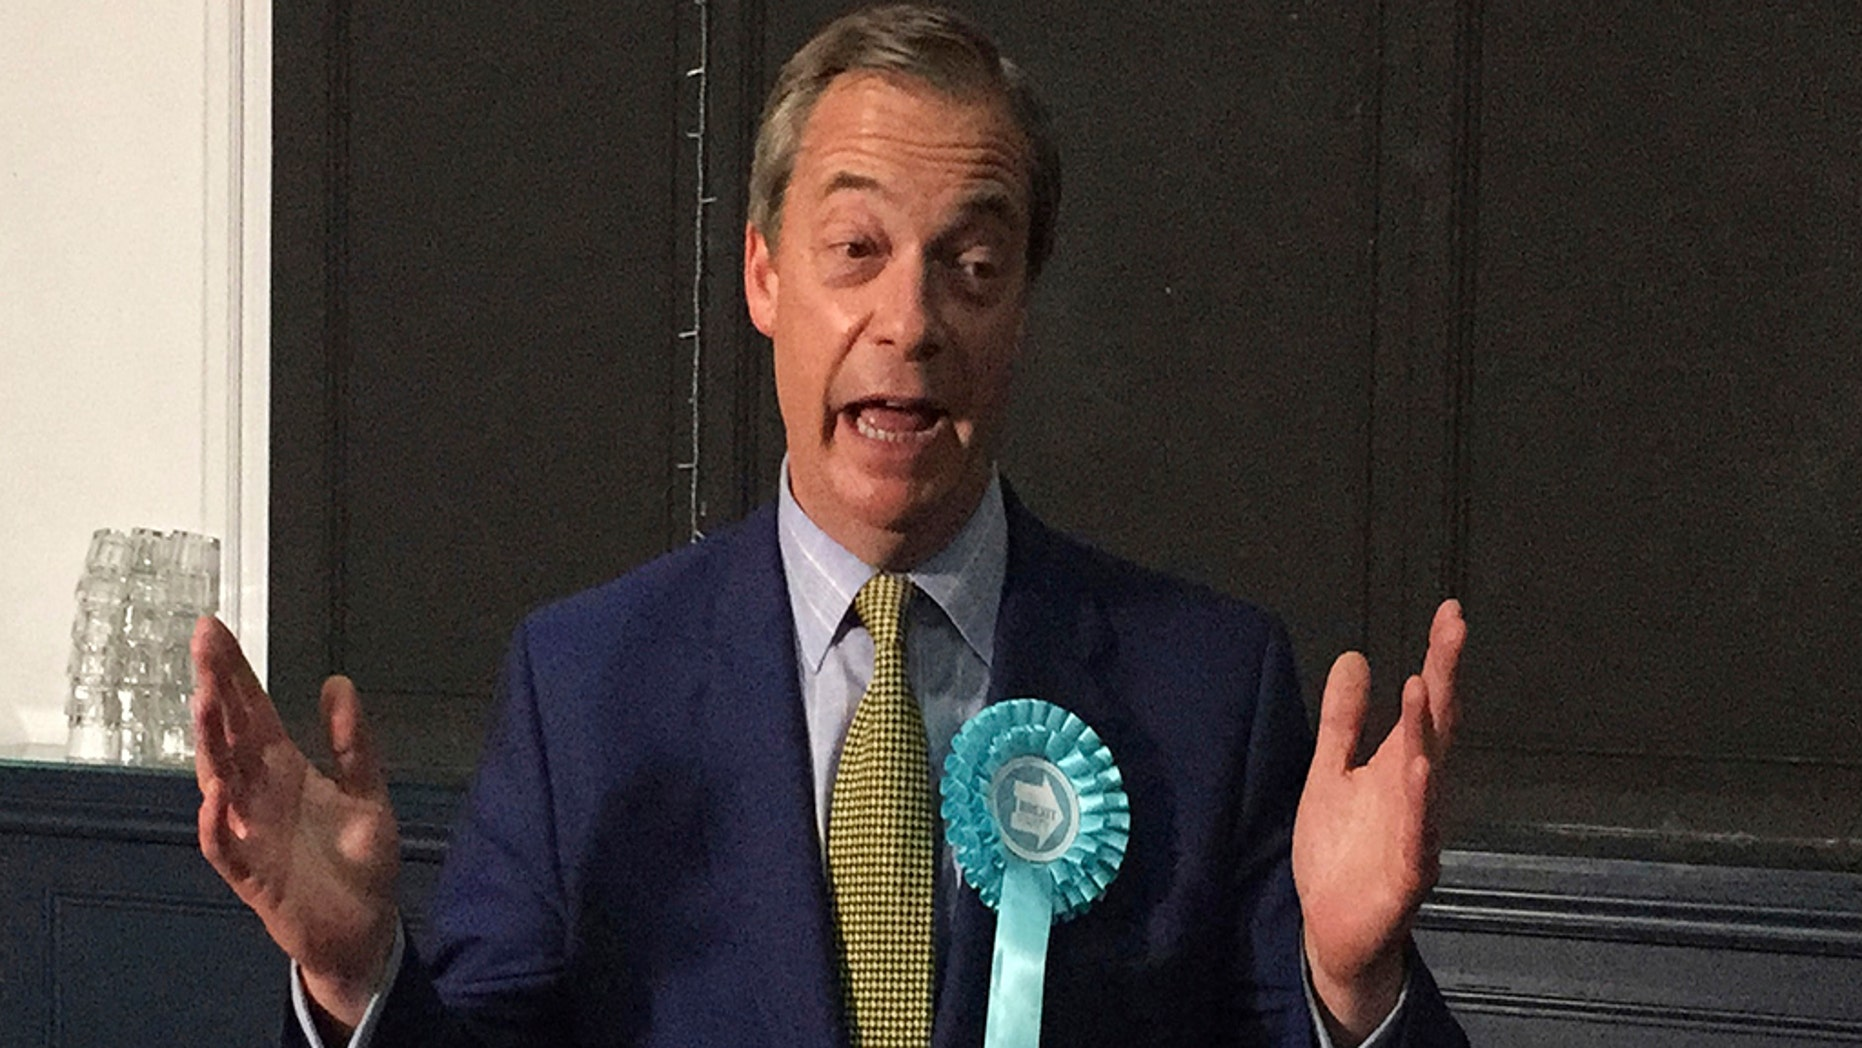 Brexit Party Leader Nigel Farage moves, during his party on the Corn Exchange, in Edinburgh on Friday 17. May 2019. (Tom Eden / PA via AP)